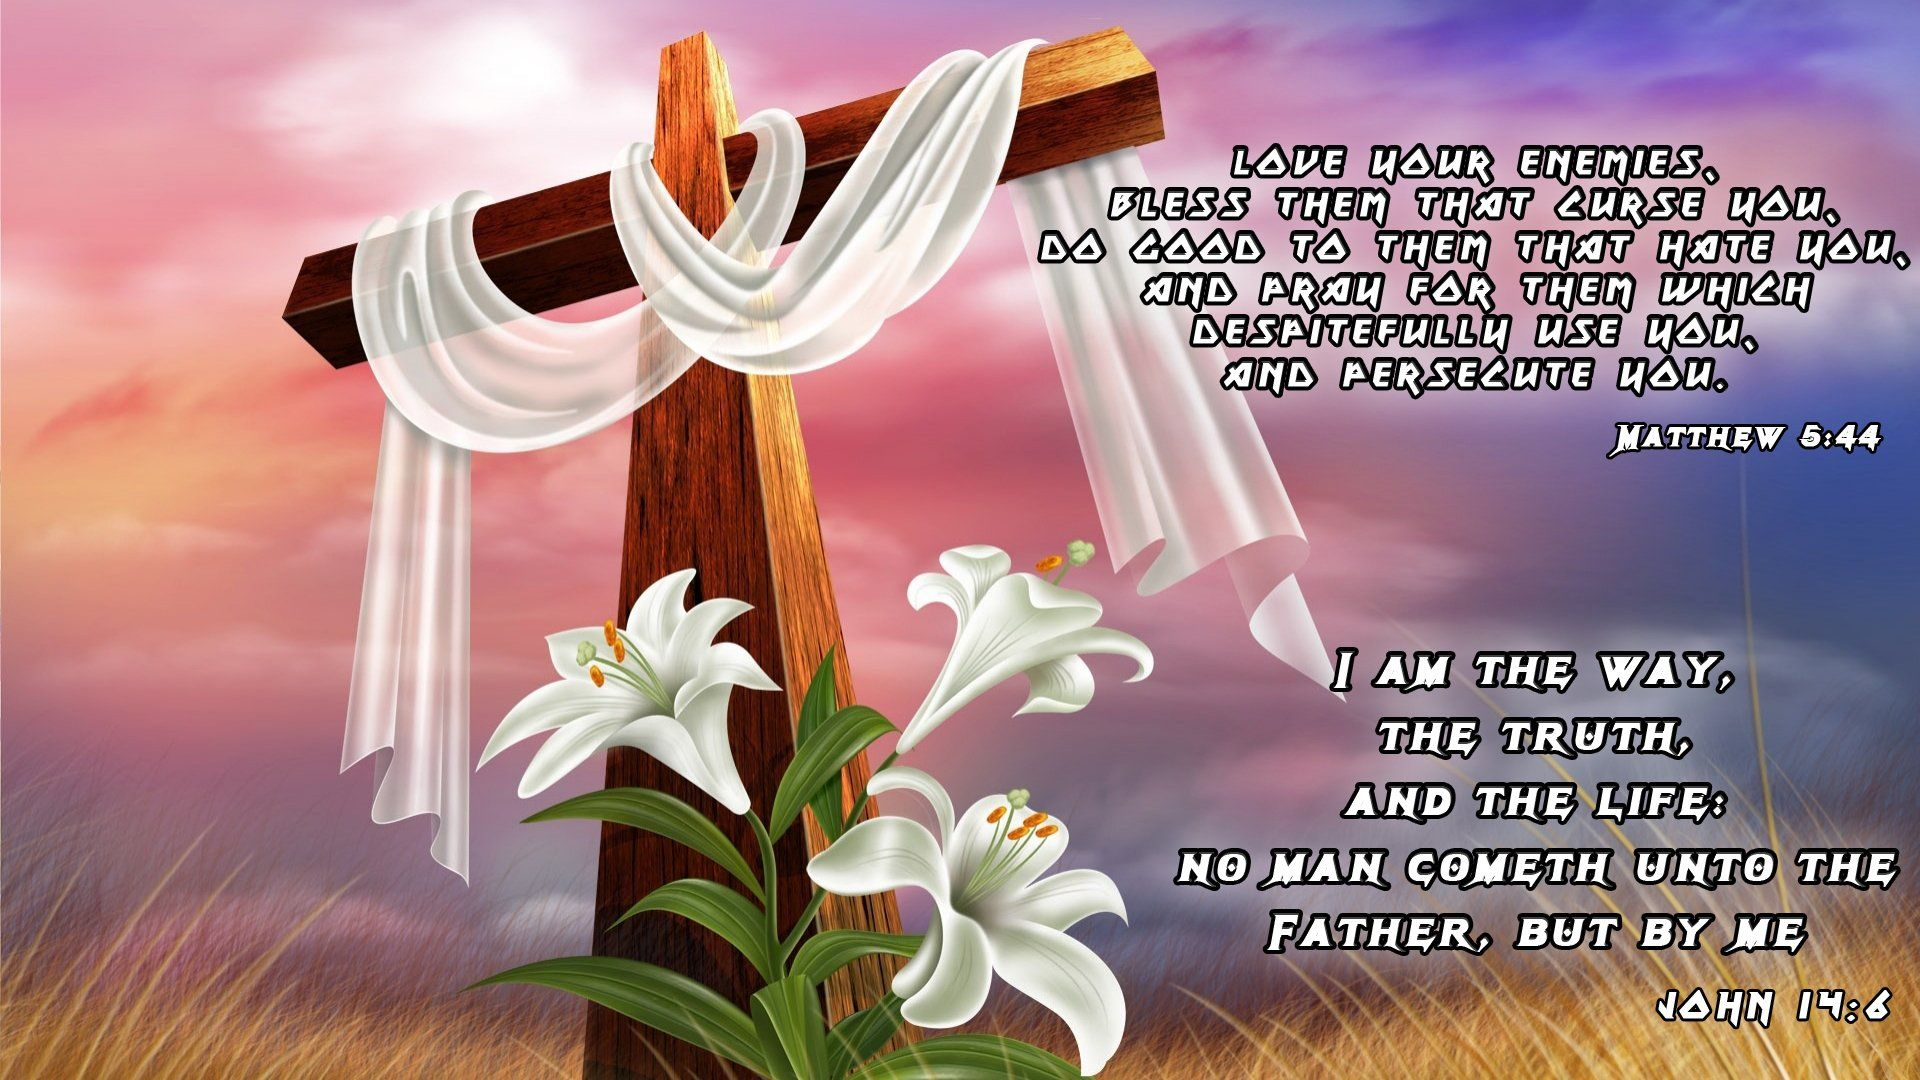 Family christian wallpapers top free family christian backgrounds wallpaperaccess - Full hd christian wallpaper ...